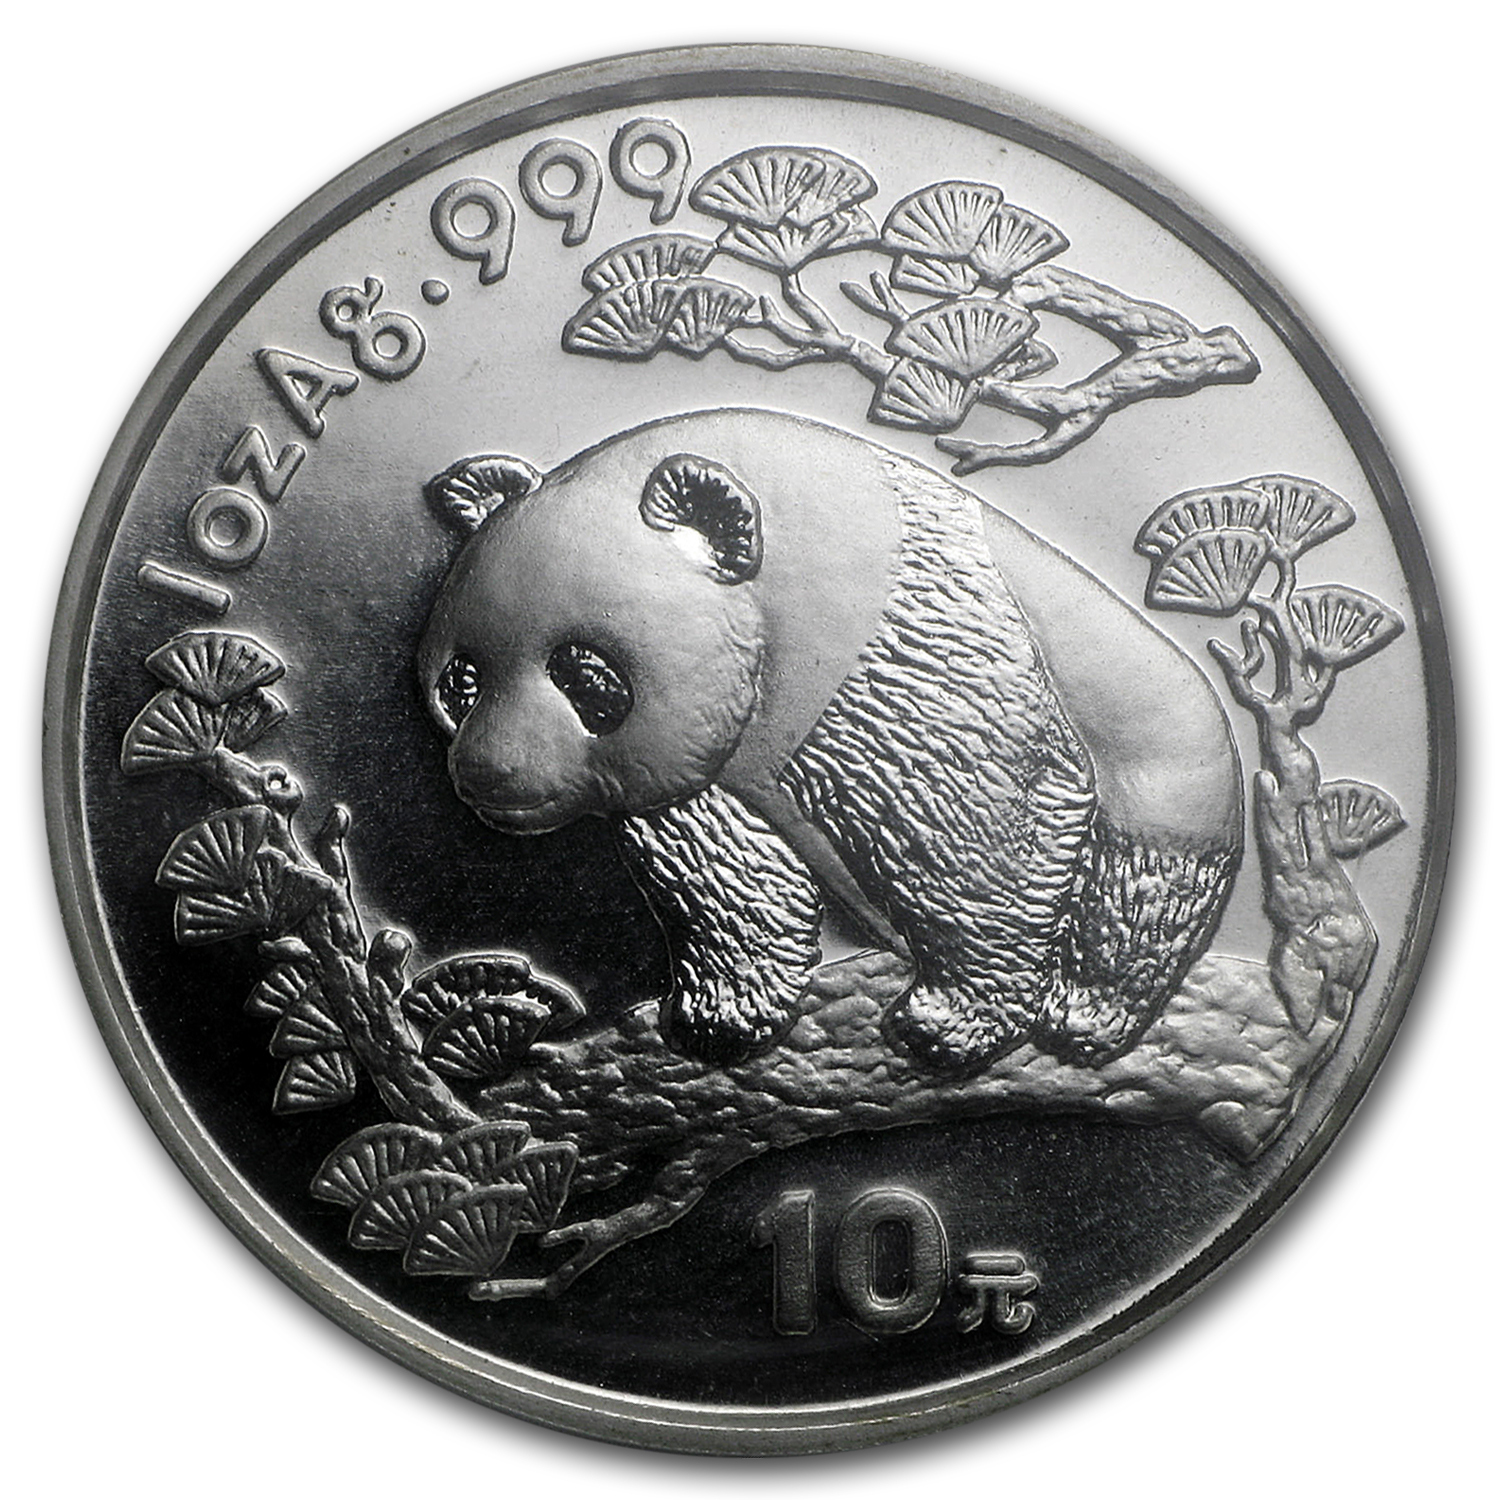 1997 China 1 oz Silver Panda Small Date BU (Sealed)